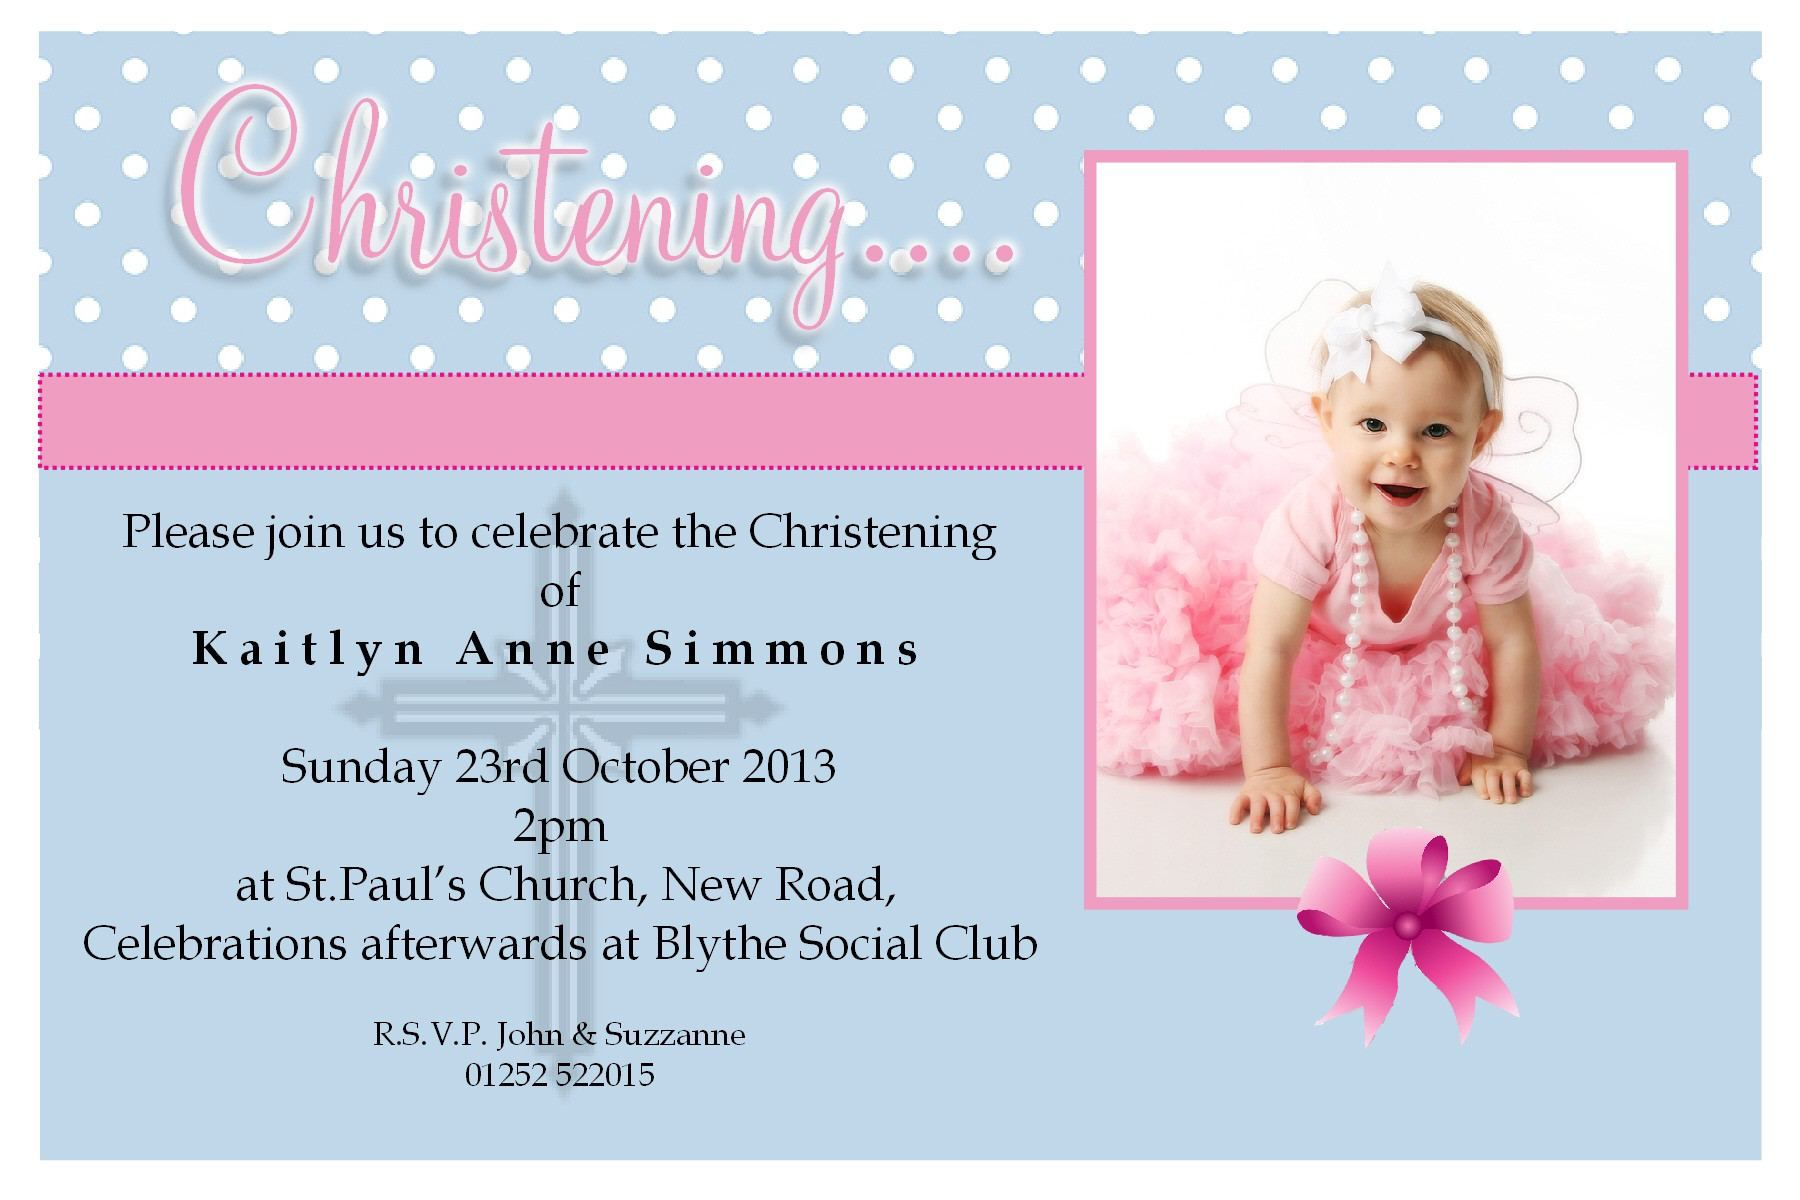 christening invitation cards christening invitation cards for